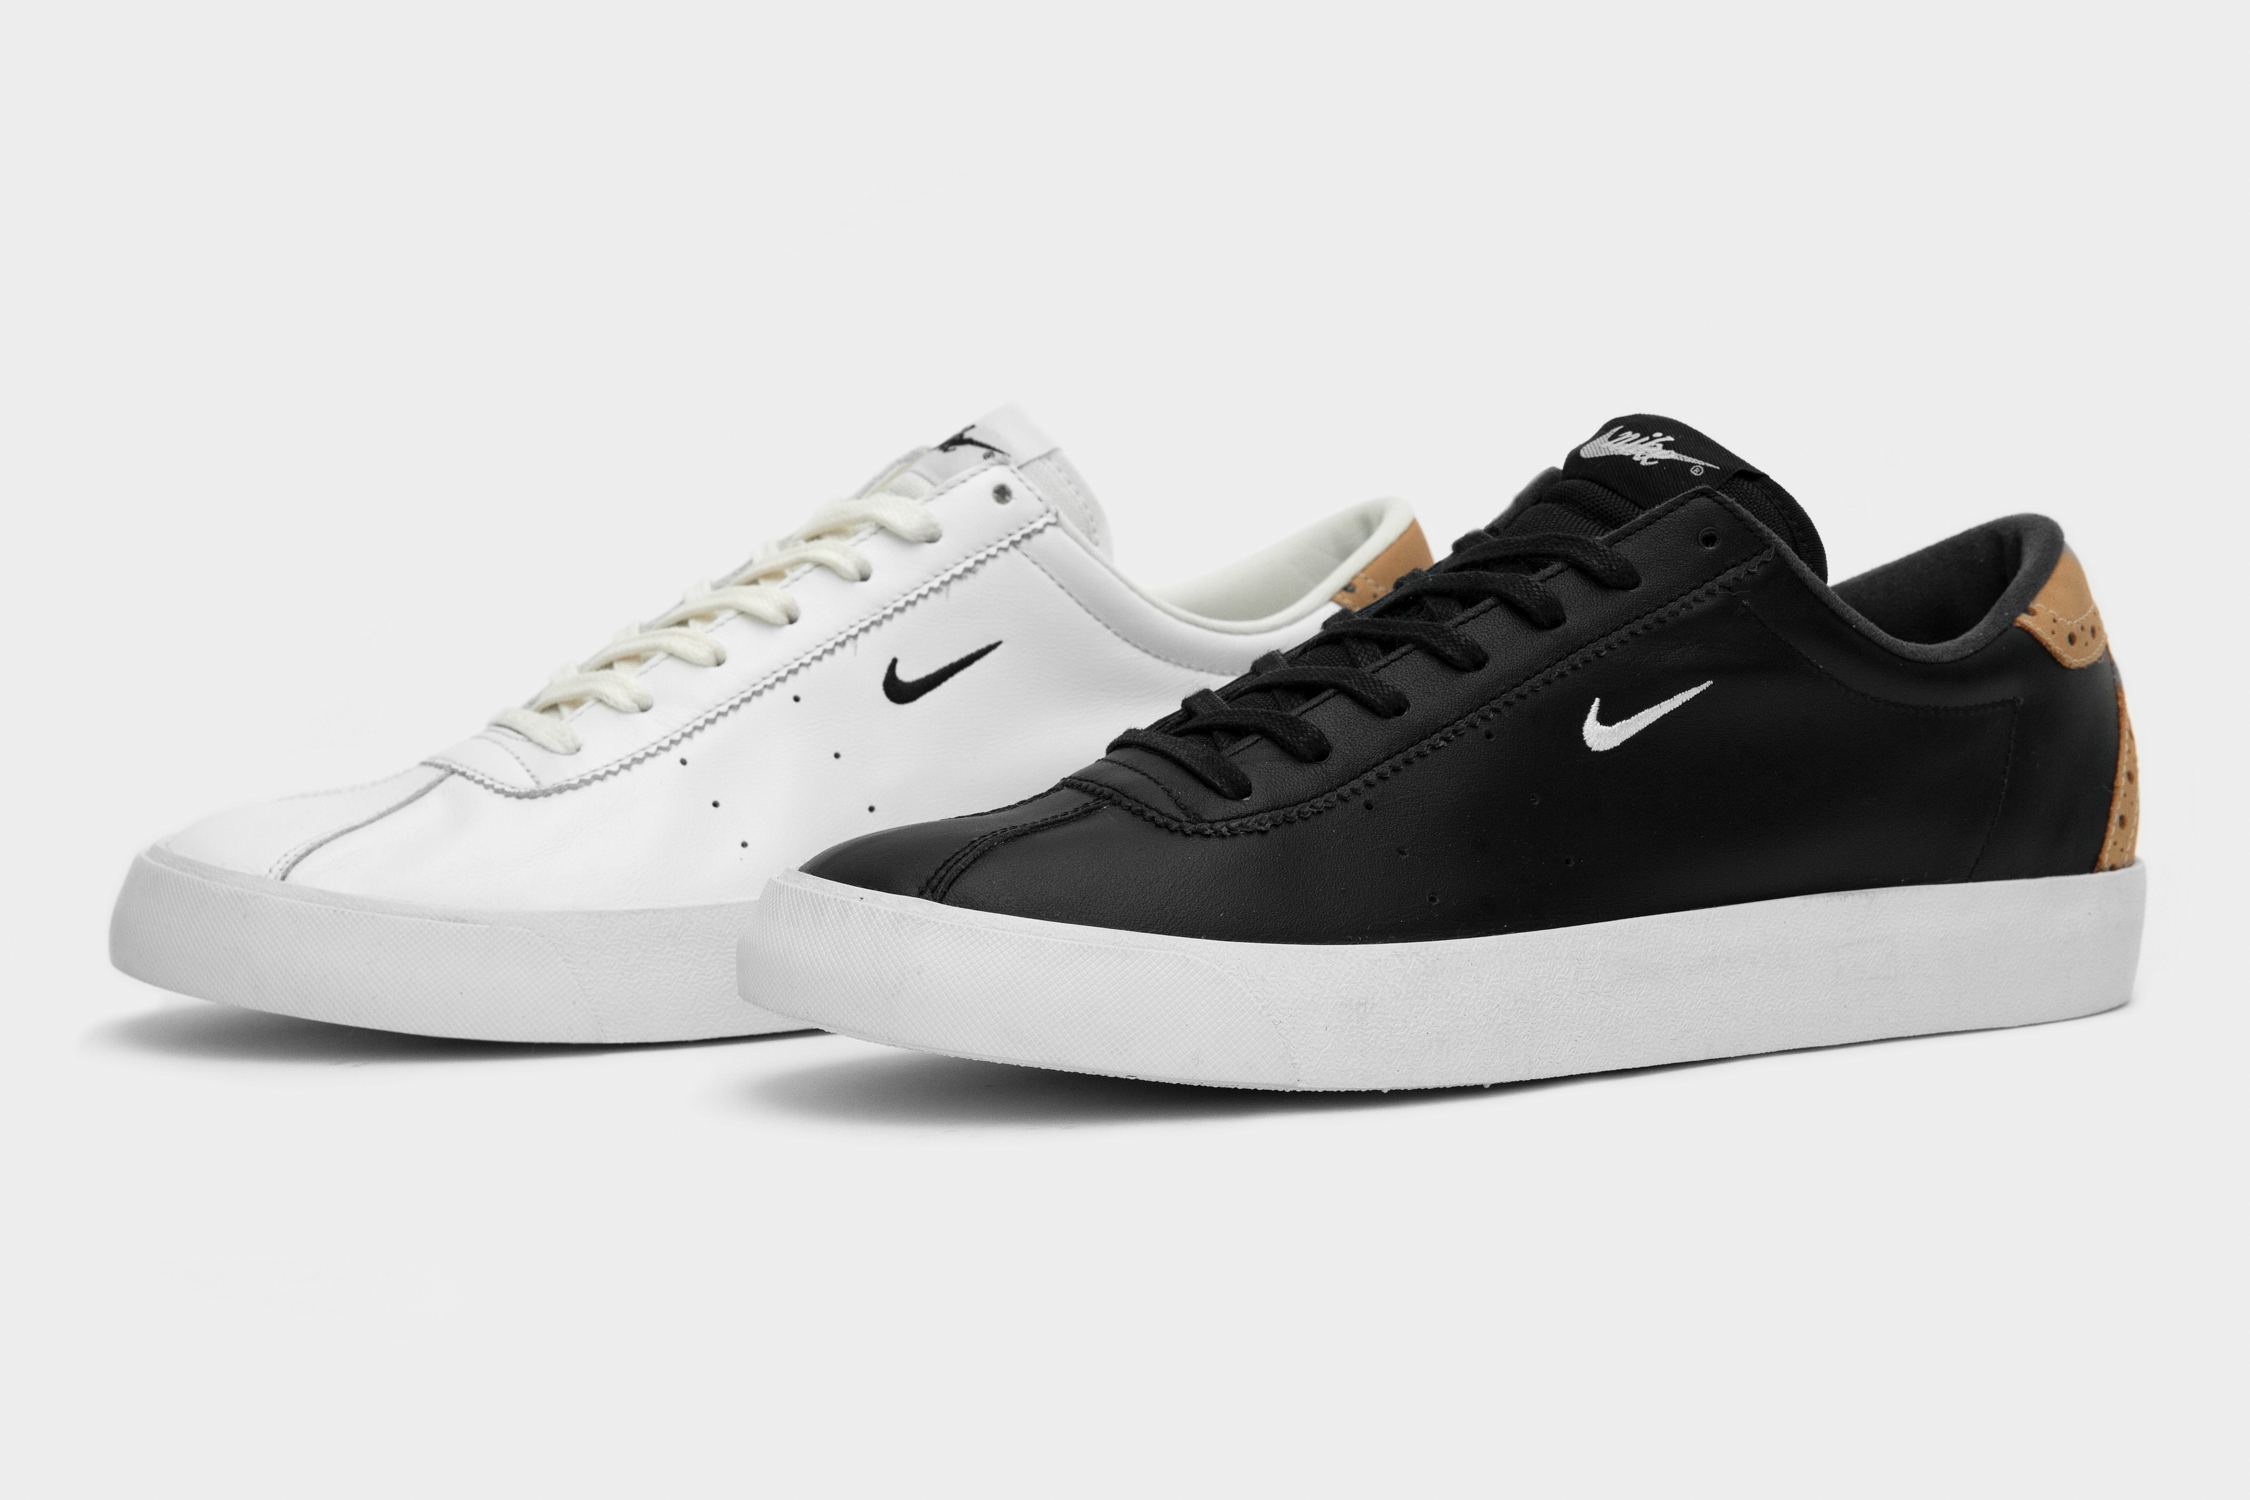 nike_match_Classic_Leather_premium_size-3